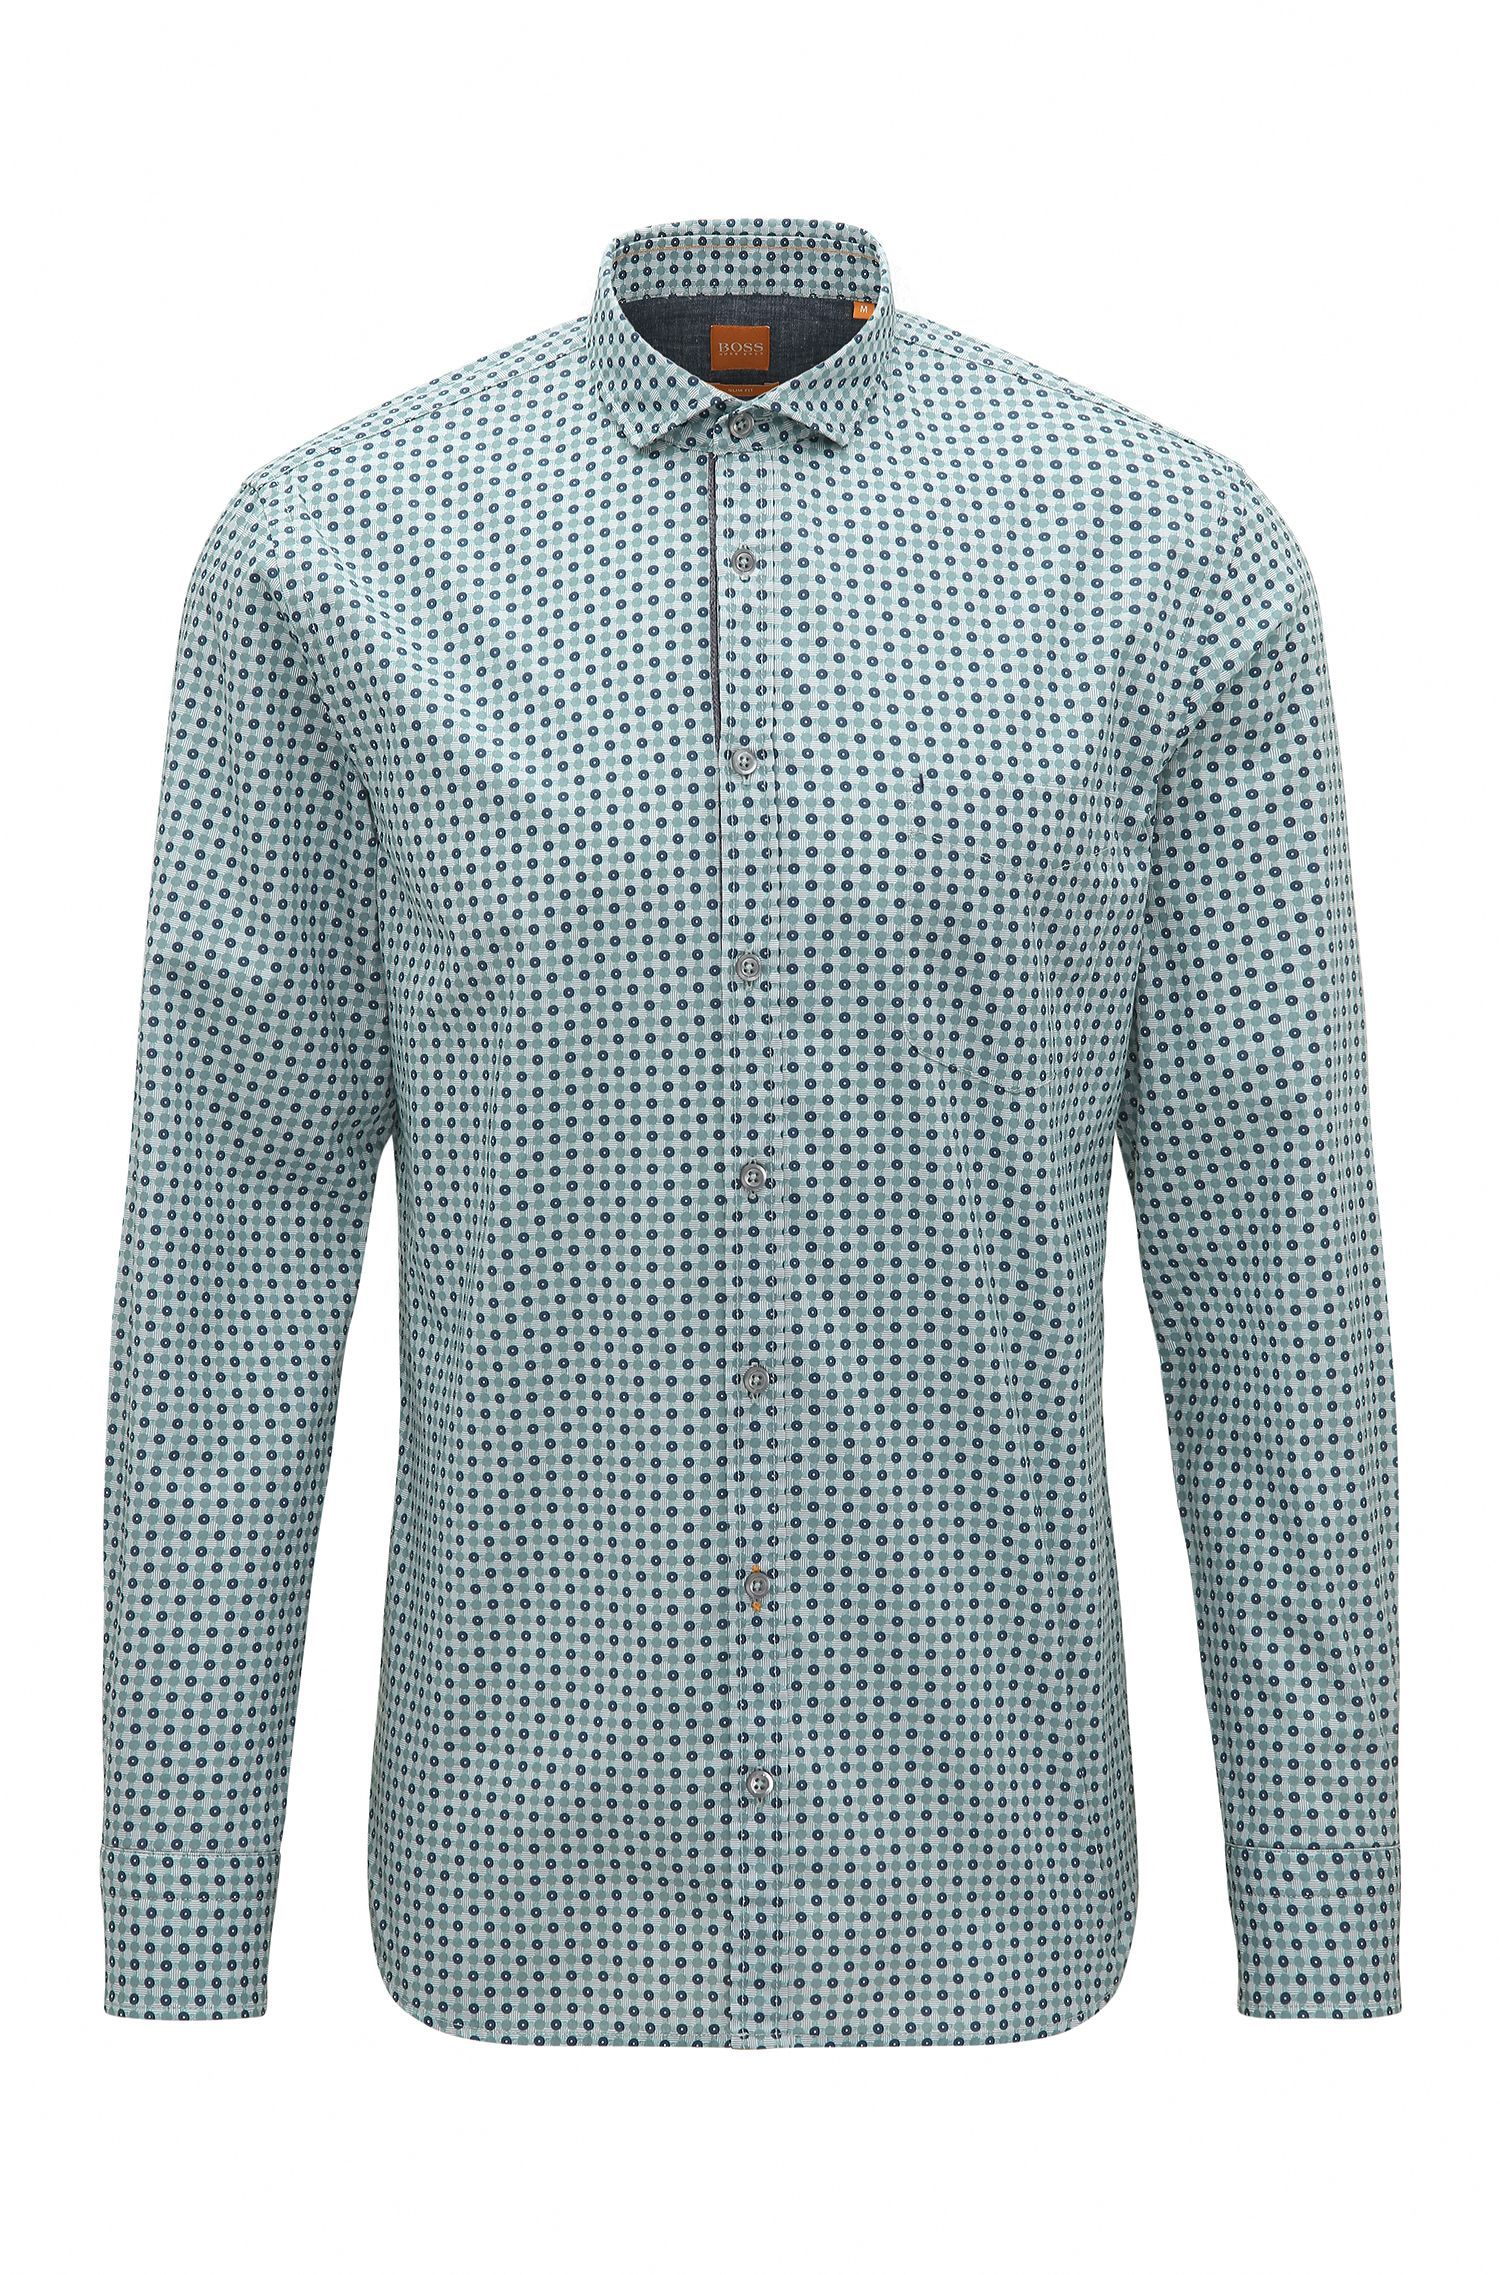 'Cattitude' | Slim Fit, Polka Dot Cotton Button Down Shirt